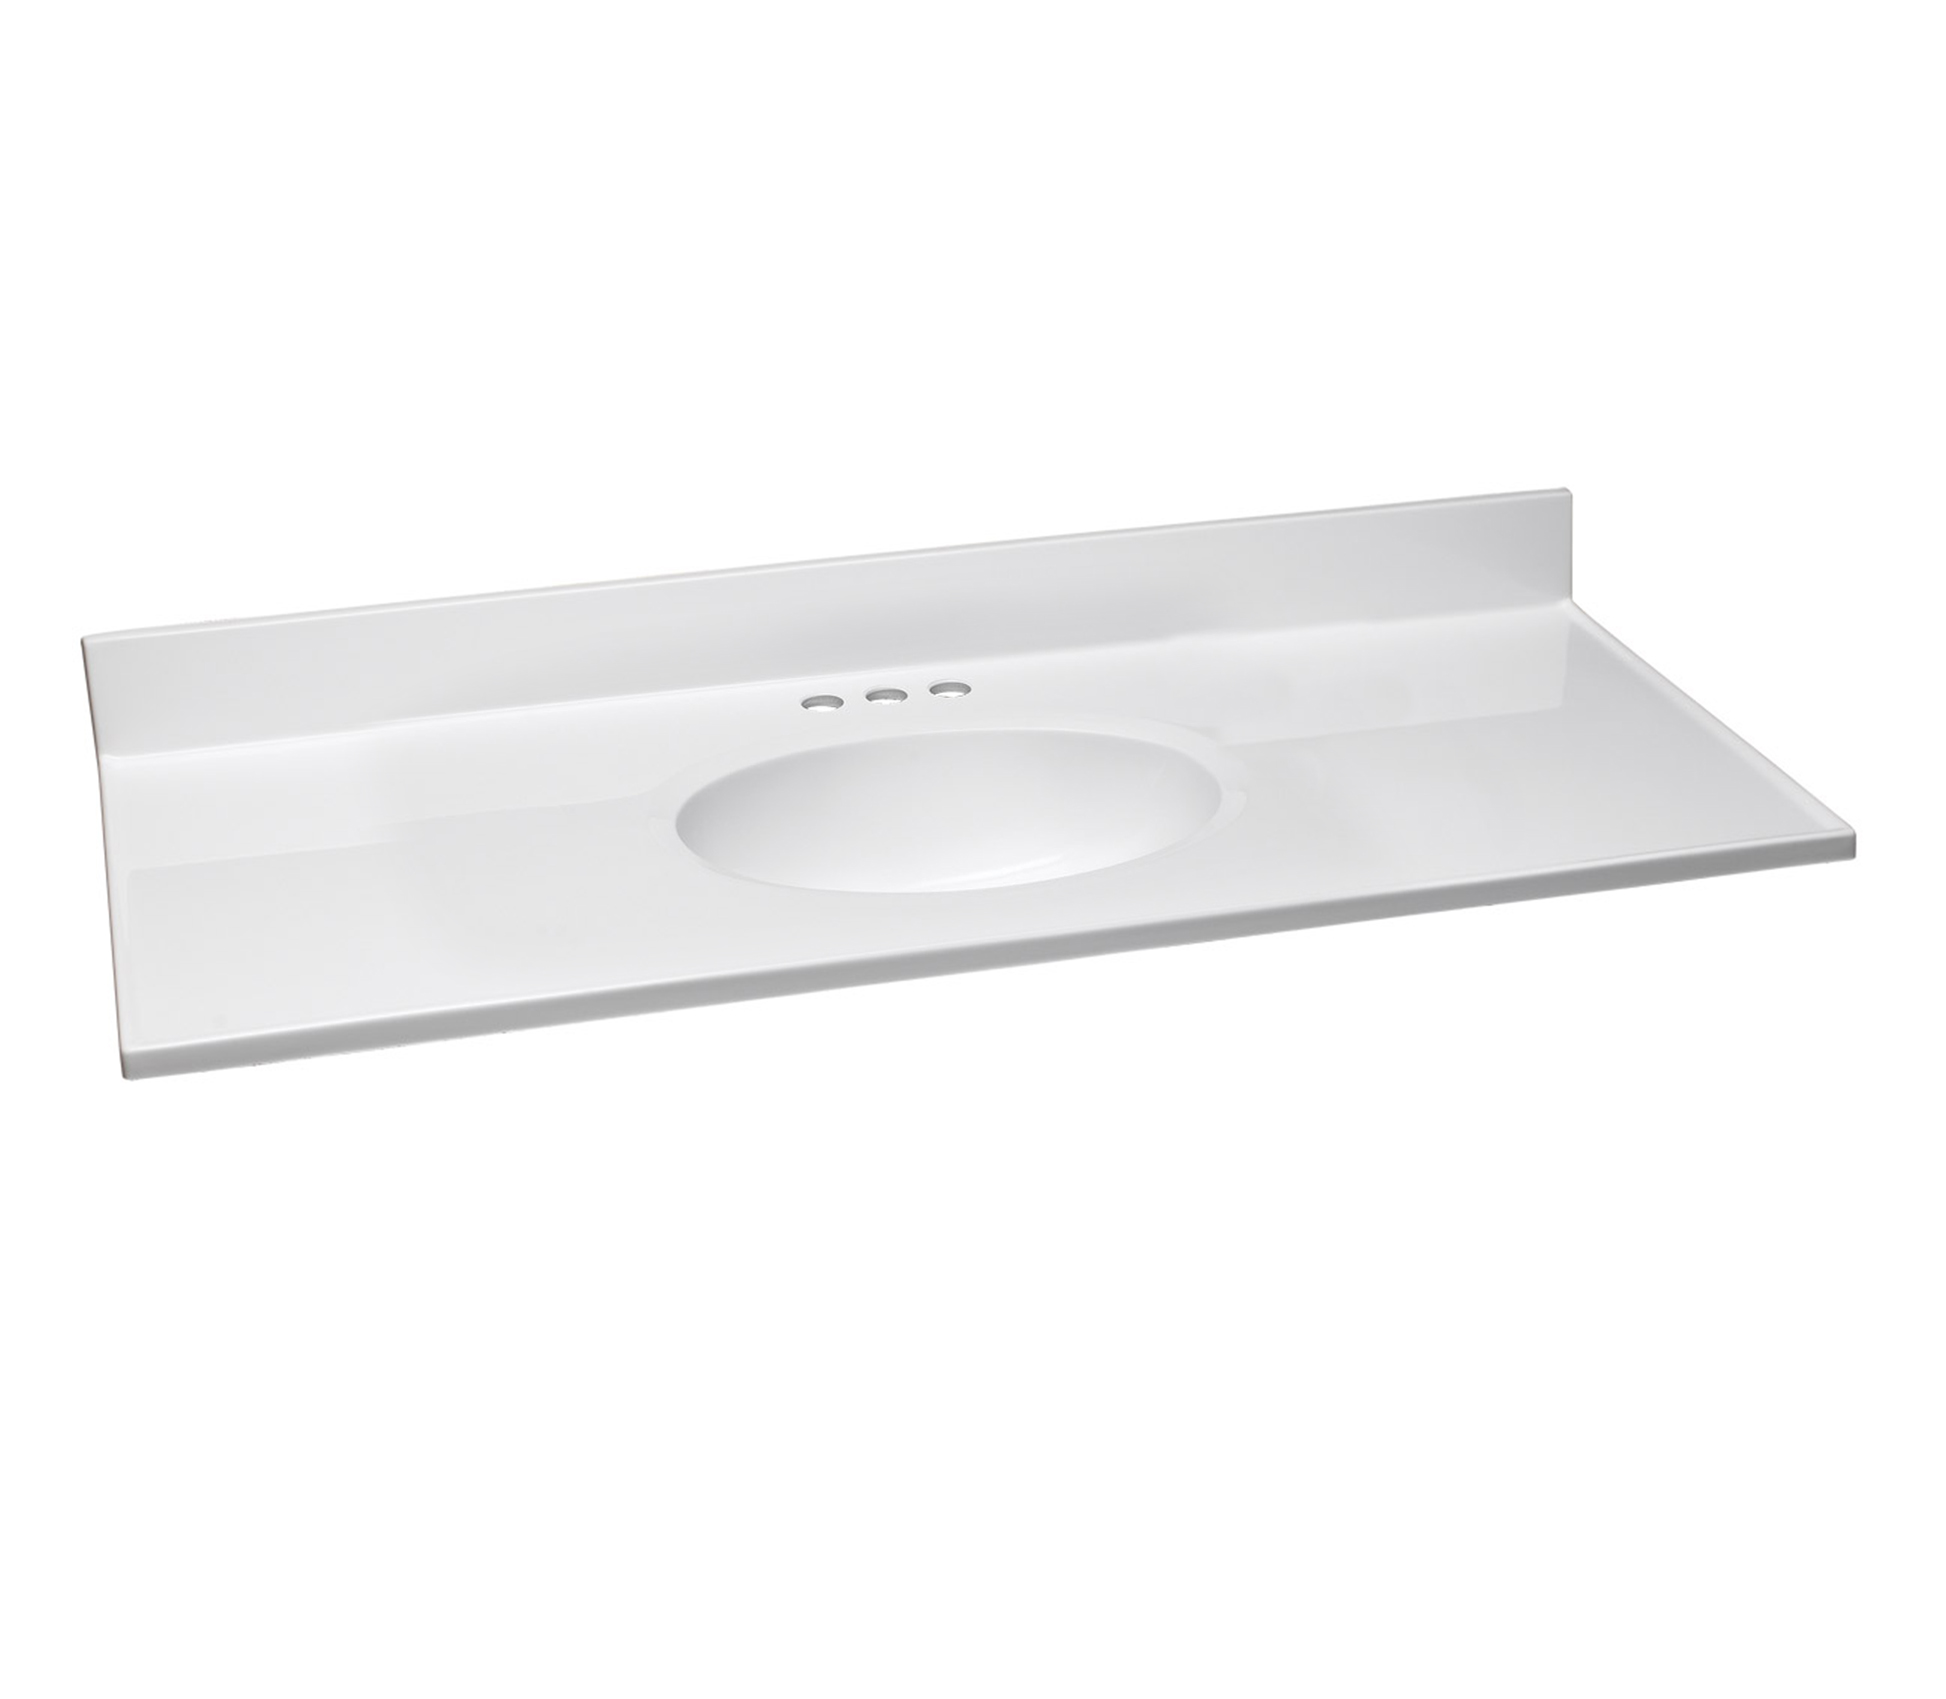 Design House 586214 Cultured Marble Vanity Top 49x19